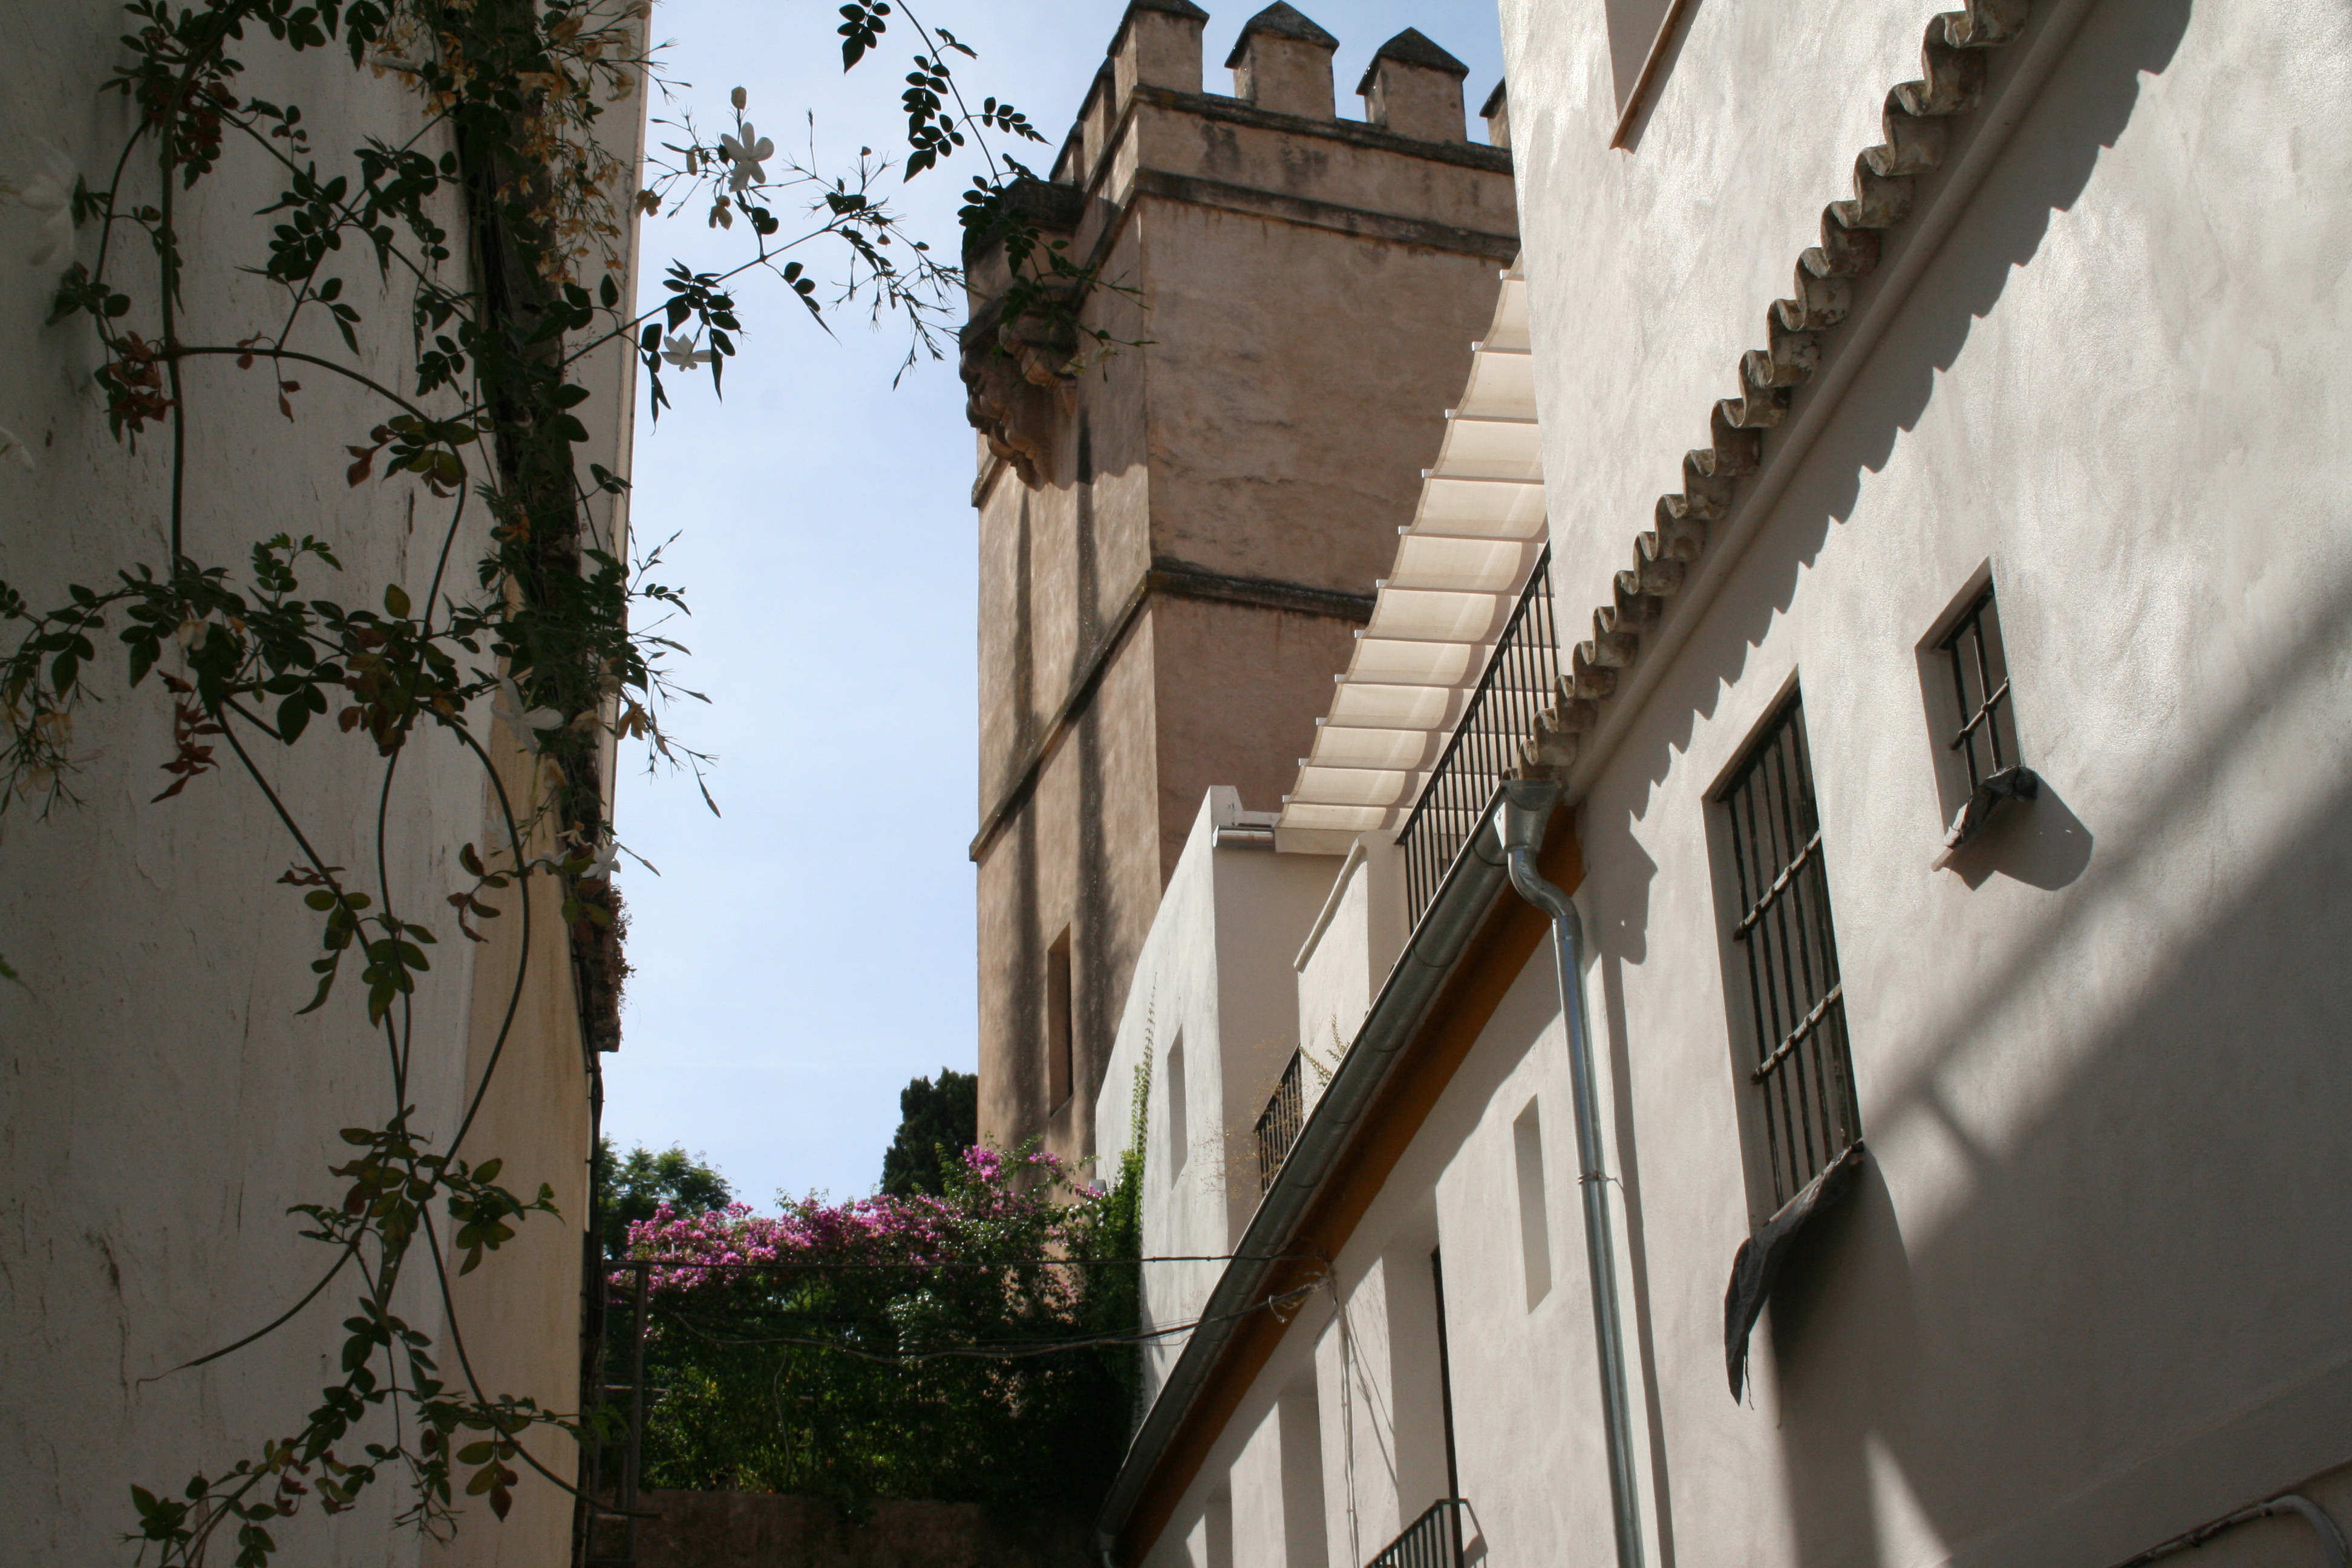 Get to know Seville in 10 minutes